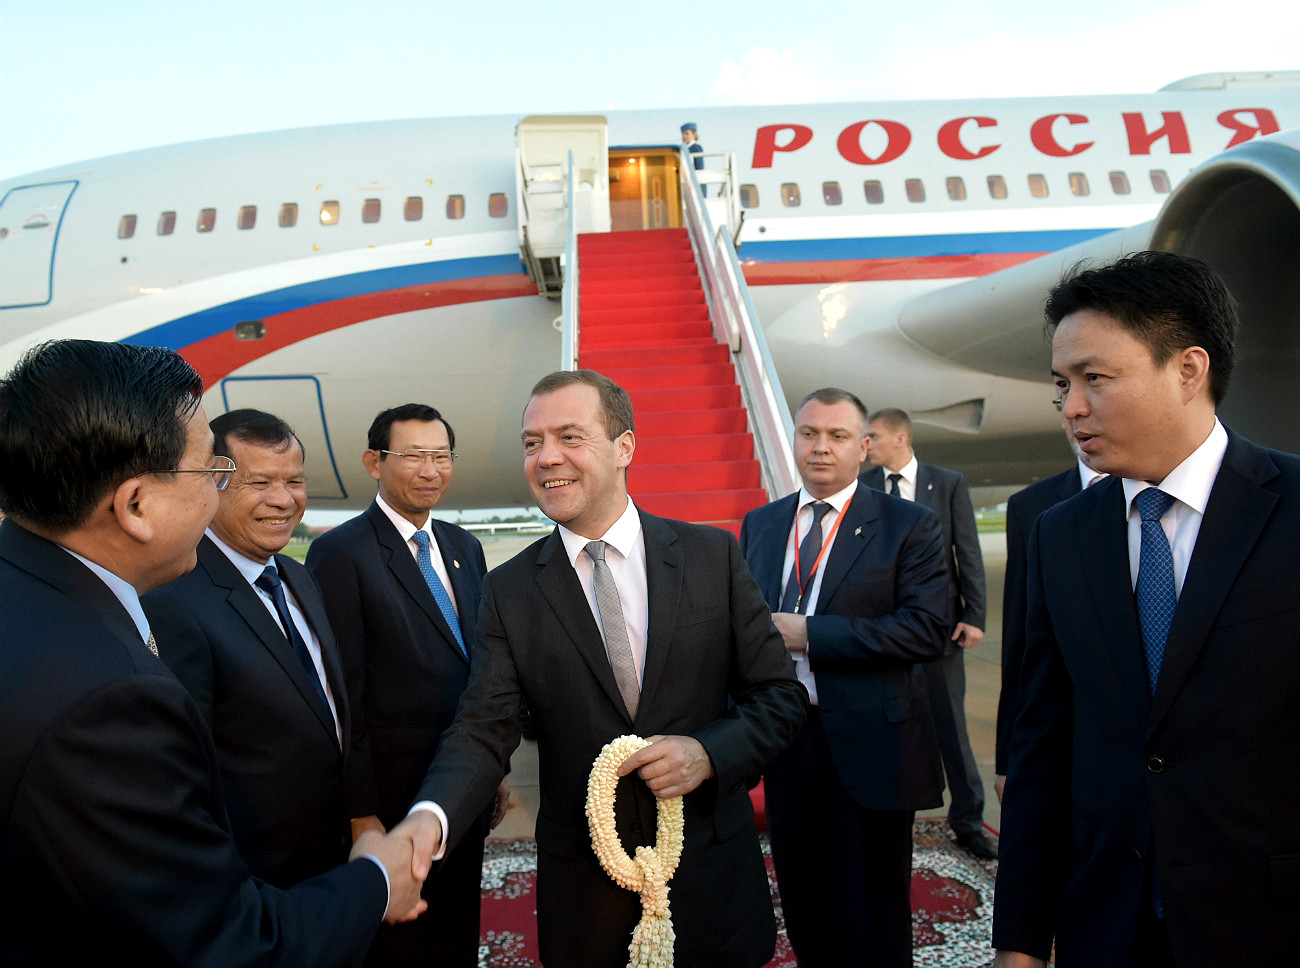 November 23, 2015. Russian Prime Minister Dmitry Medvedev, center, is welcomed at Phnom Penh International Airport during his working visit to the Kingdom of Cambodia.